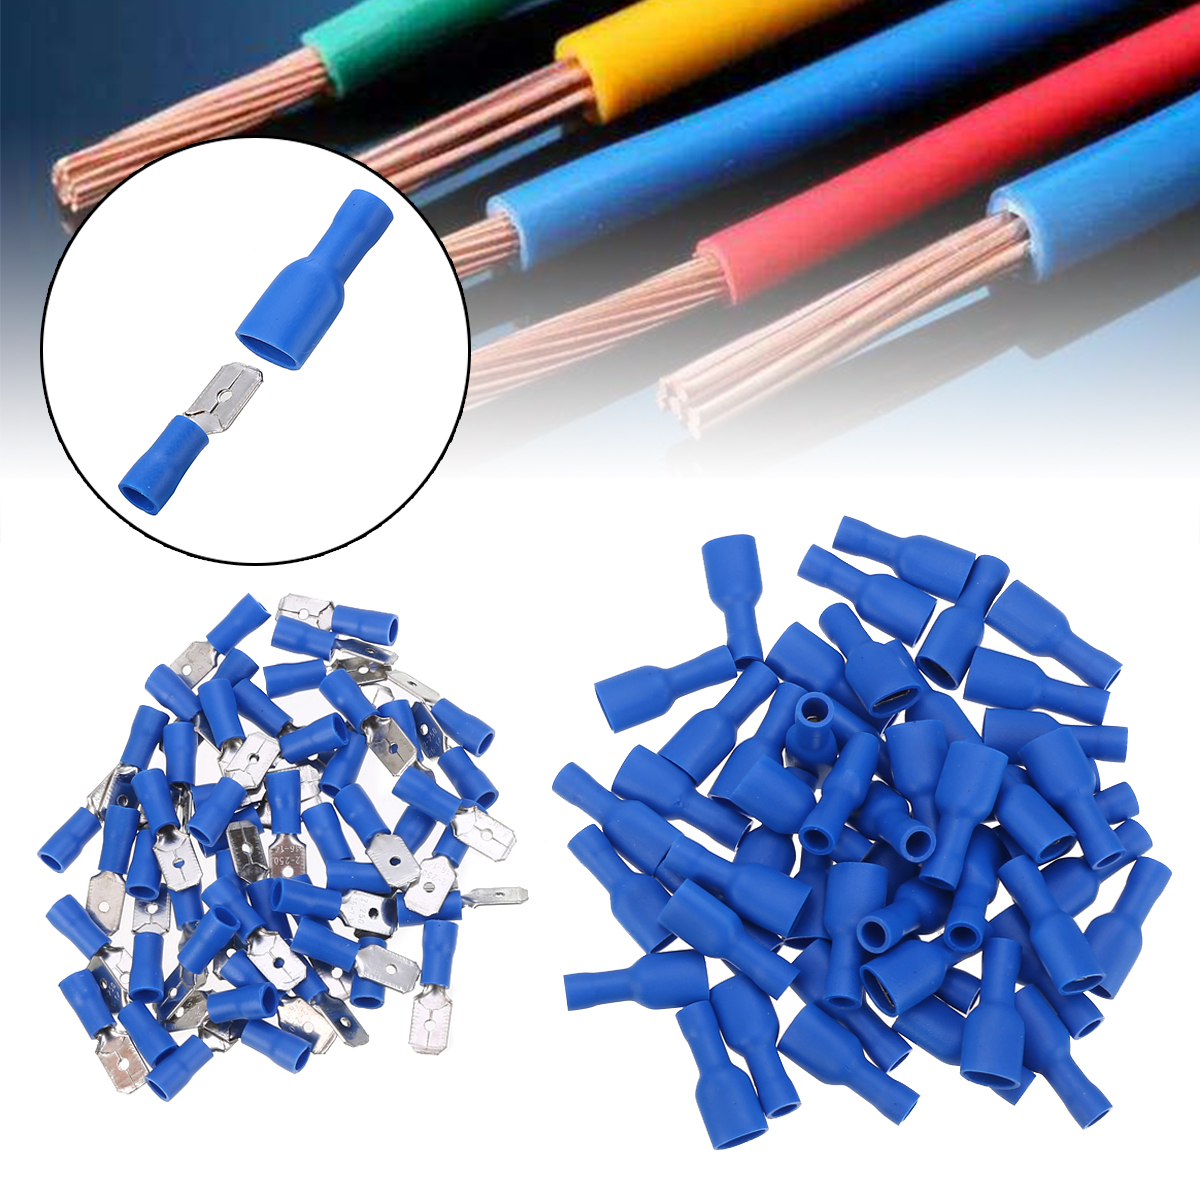 100Pcs Female/&Male Spade Insulated`Connectors Crimps Electrical Wires FO